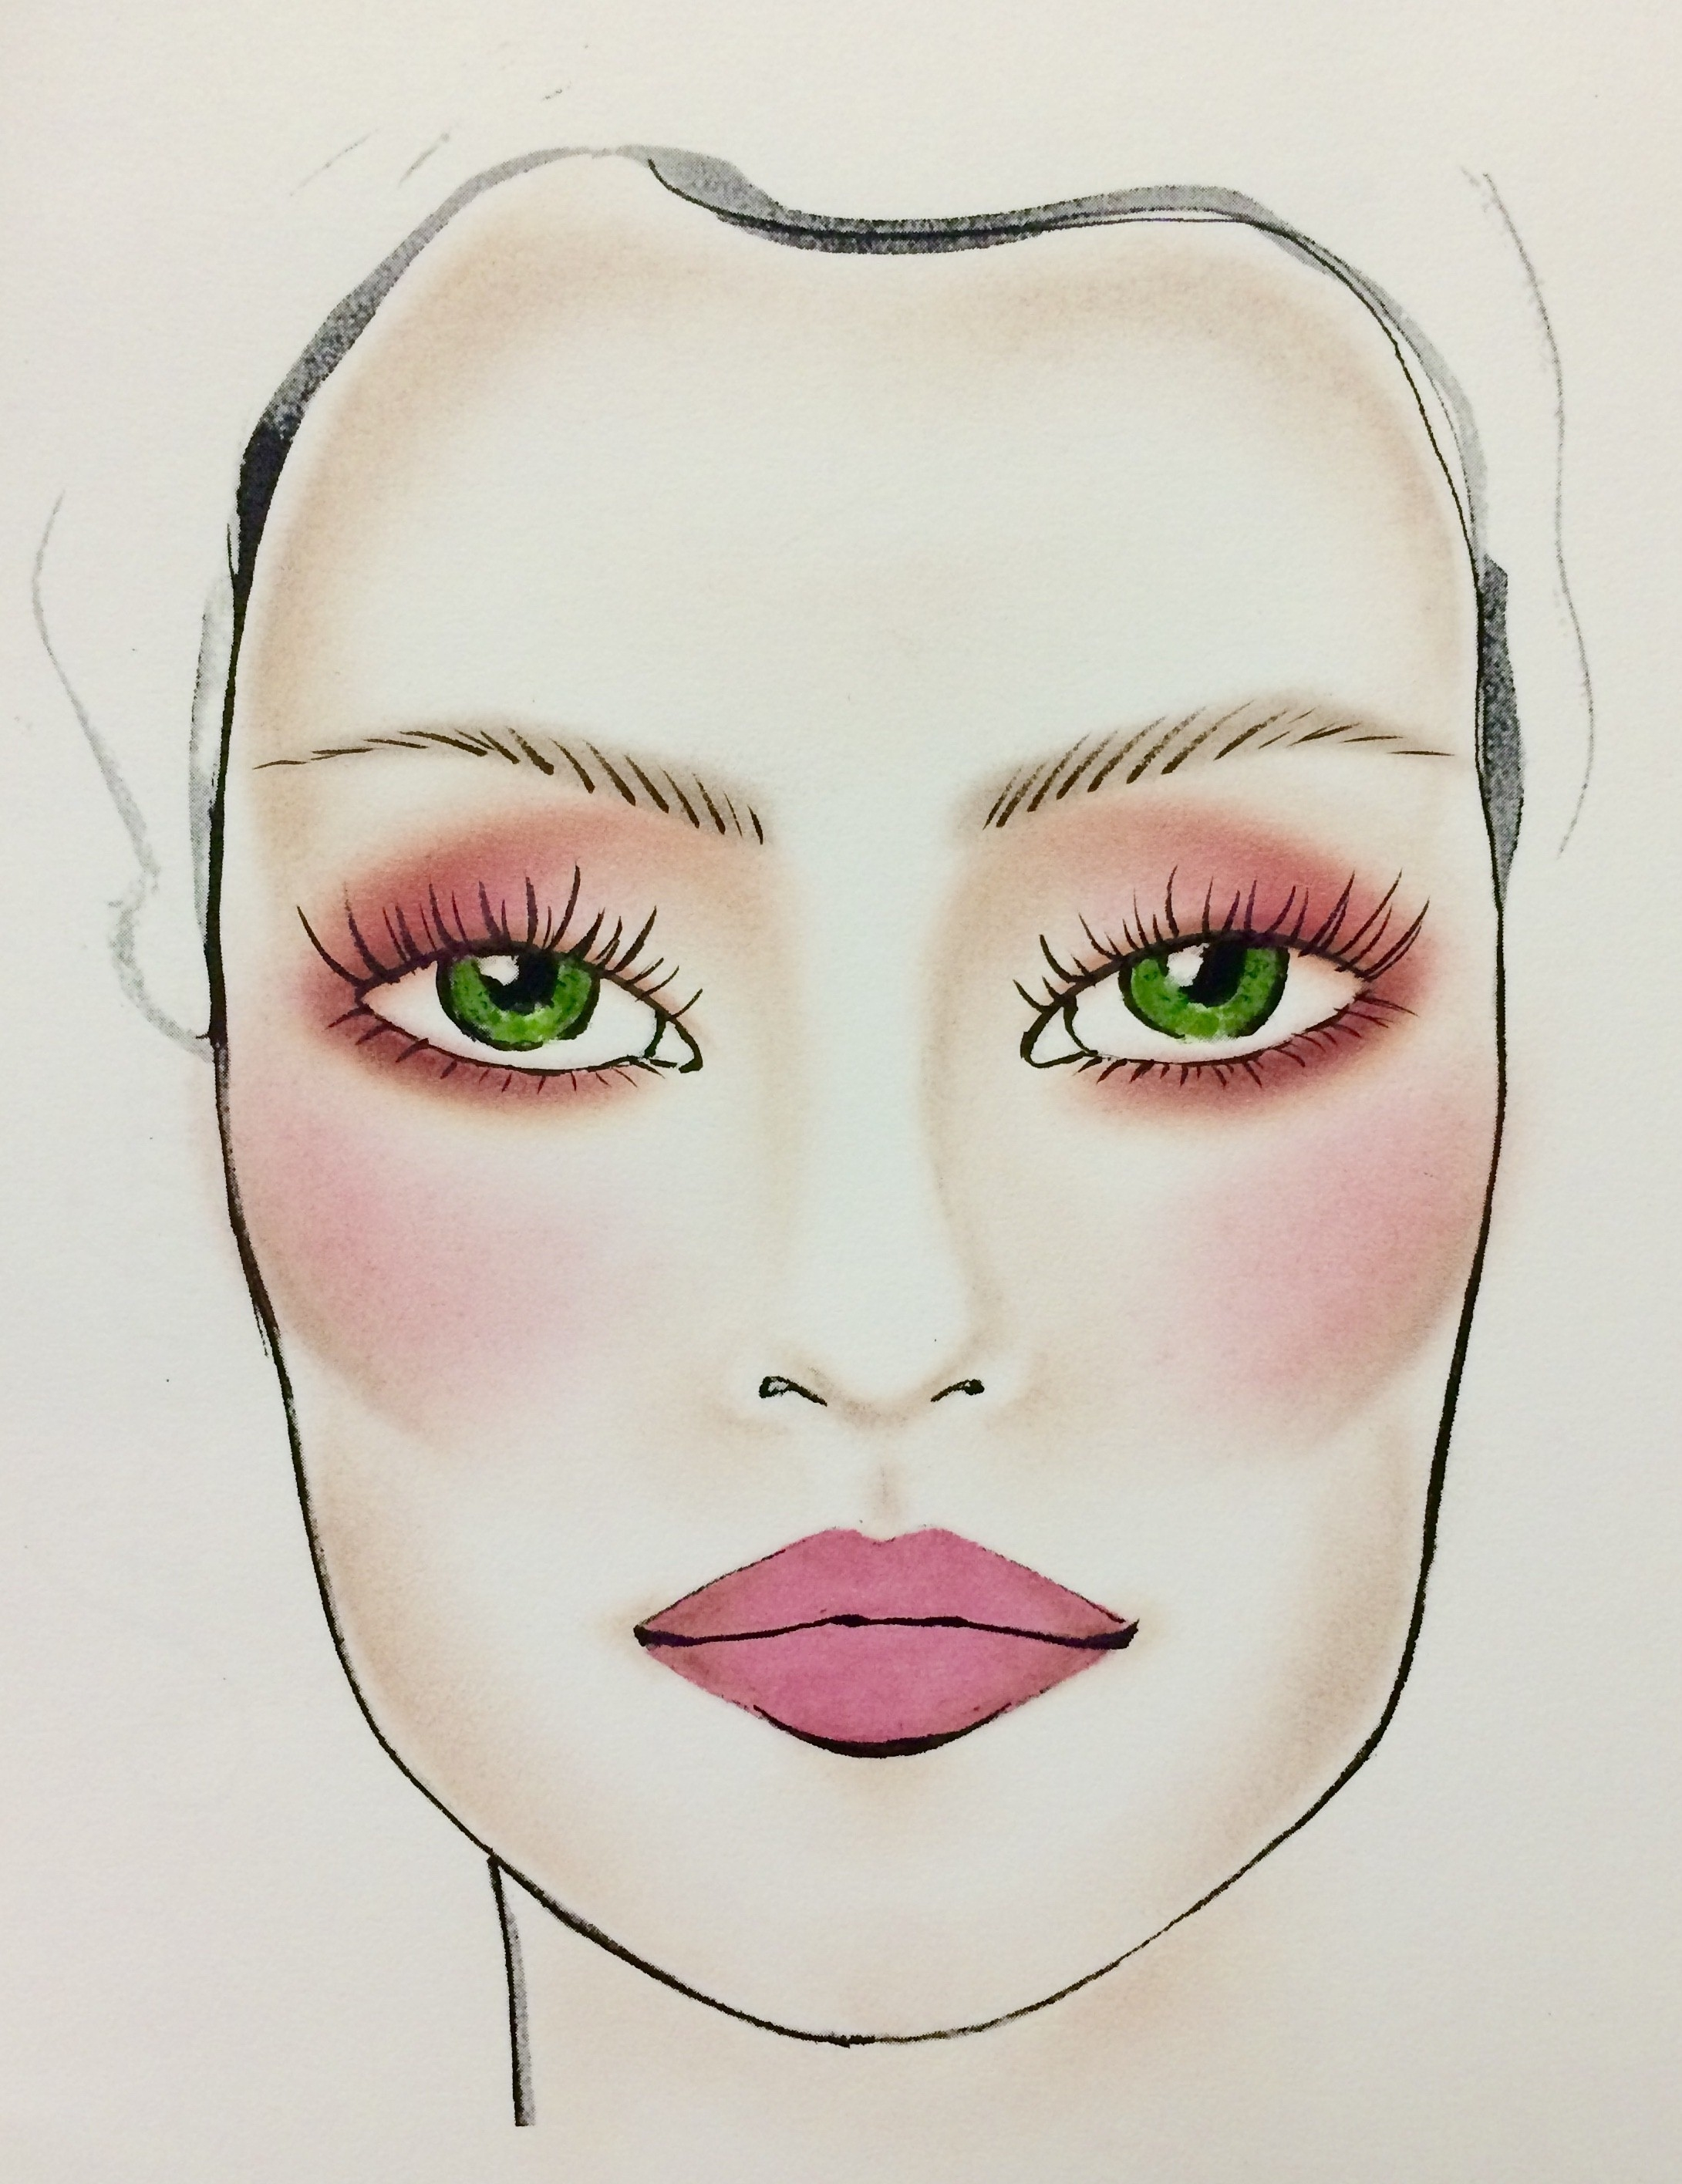 The Most Gorgeous Makeup For Green Eyes | Huffpost Life inside What Color Makeup Is Good For Green Eyes